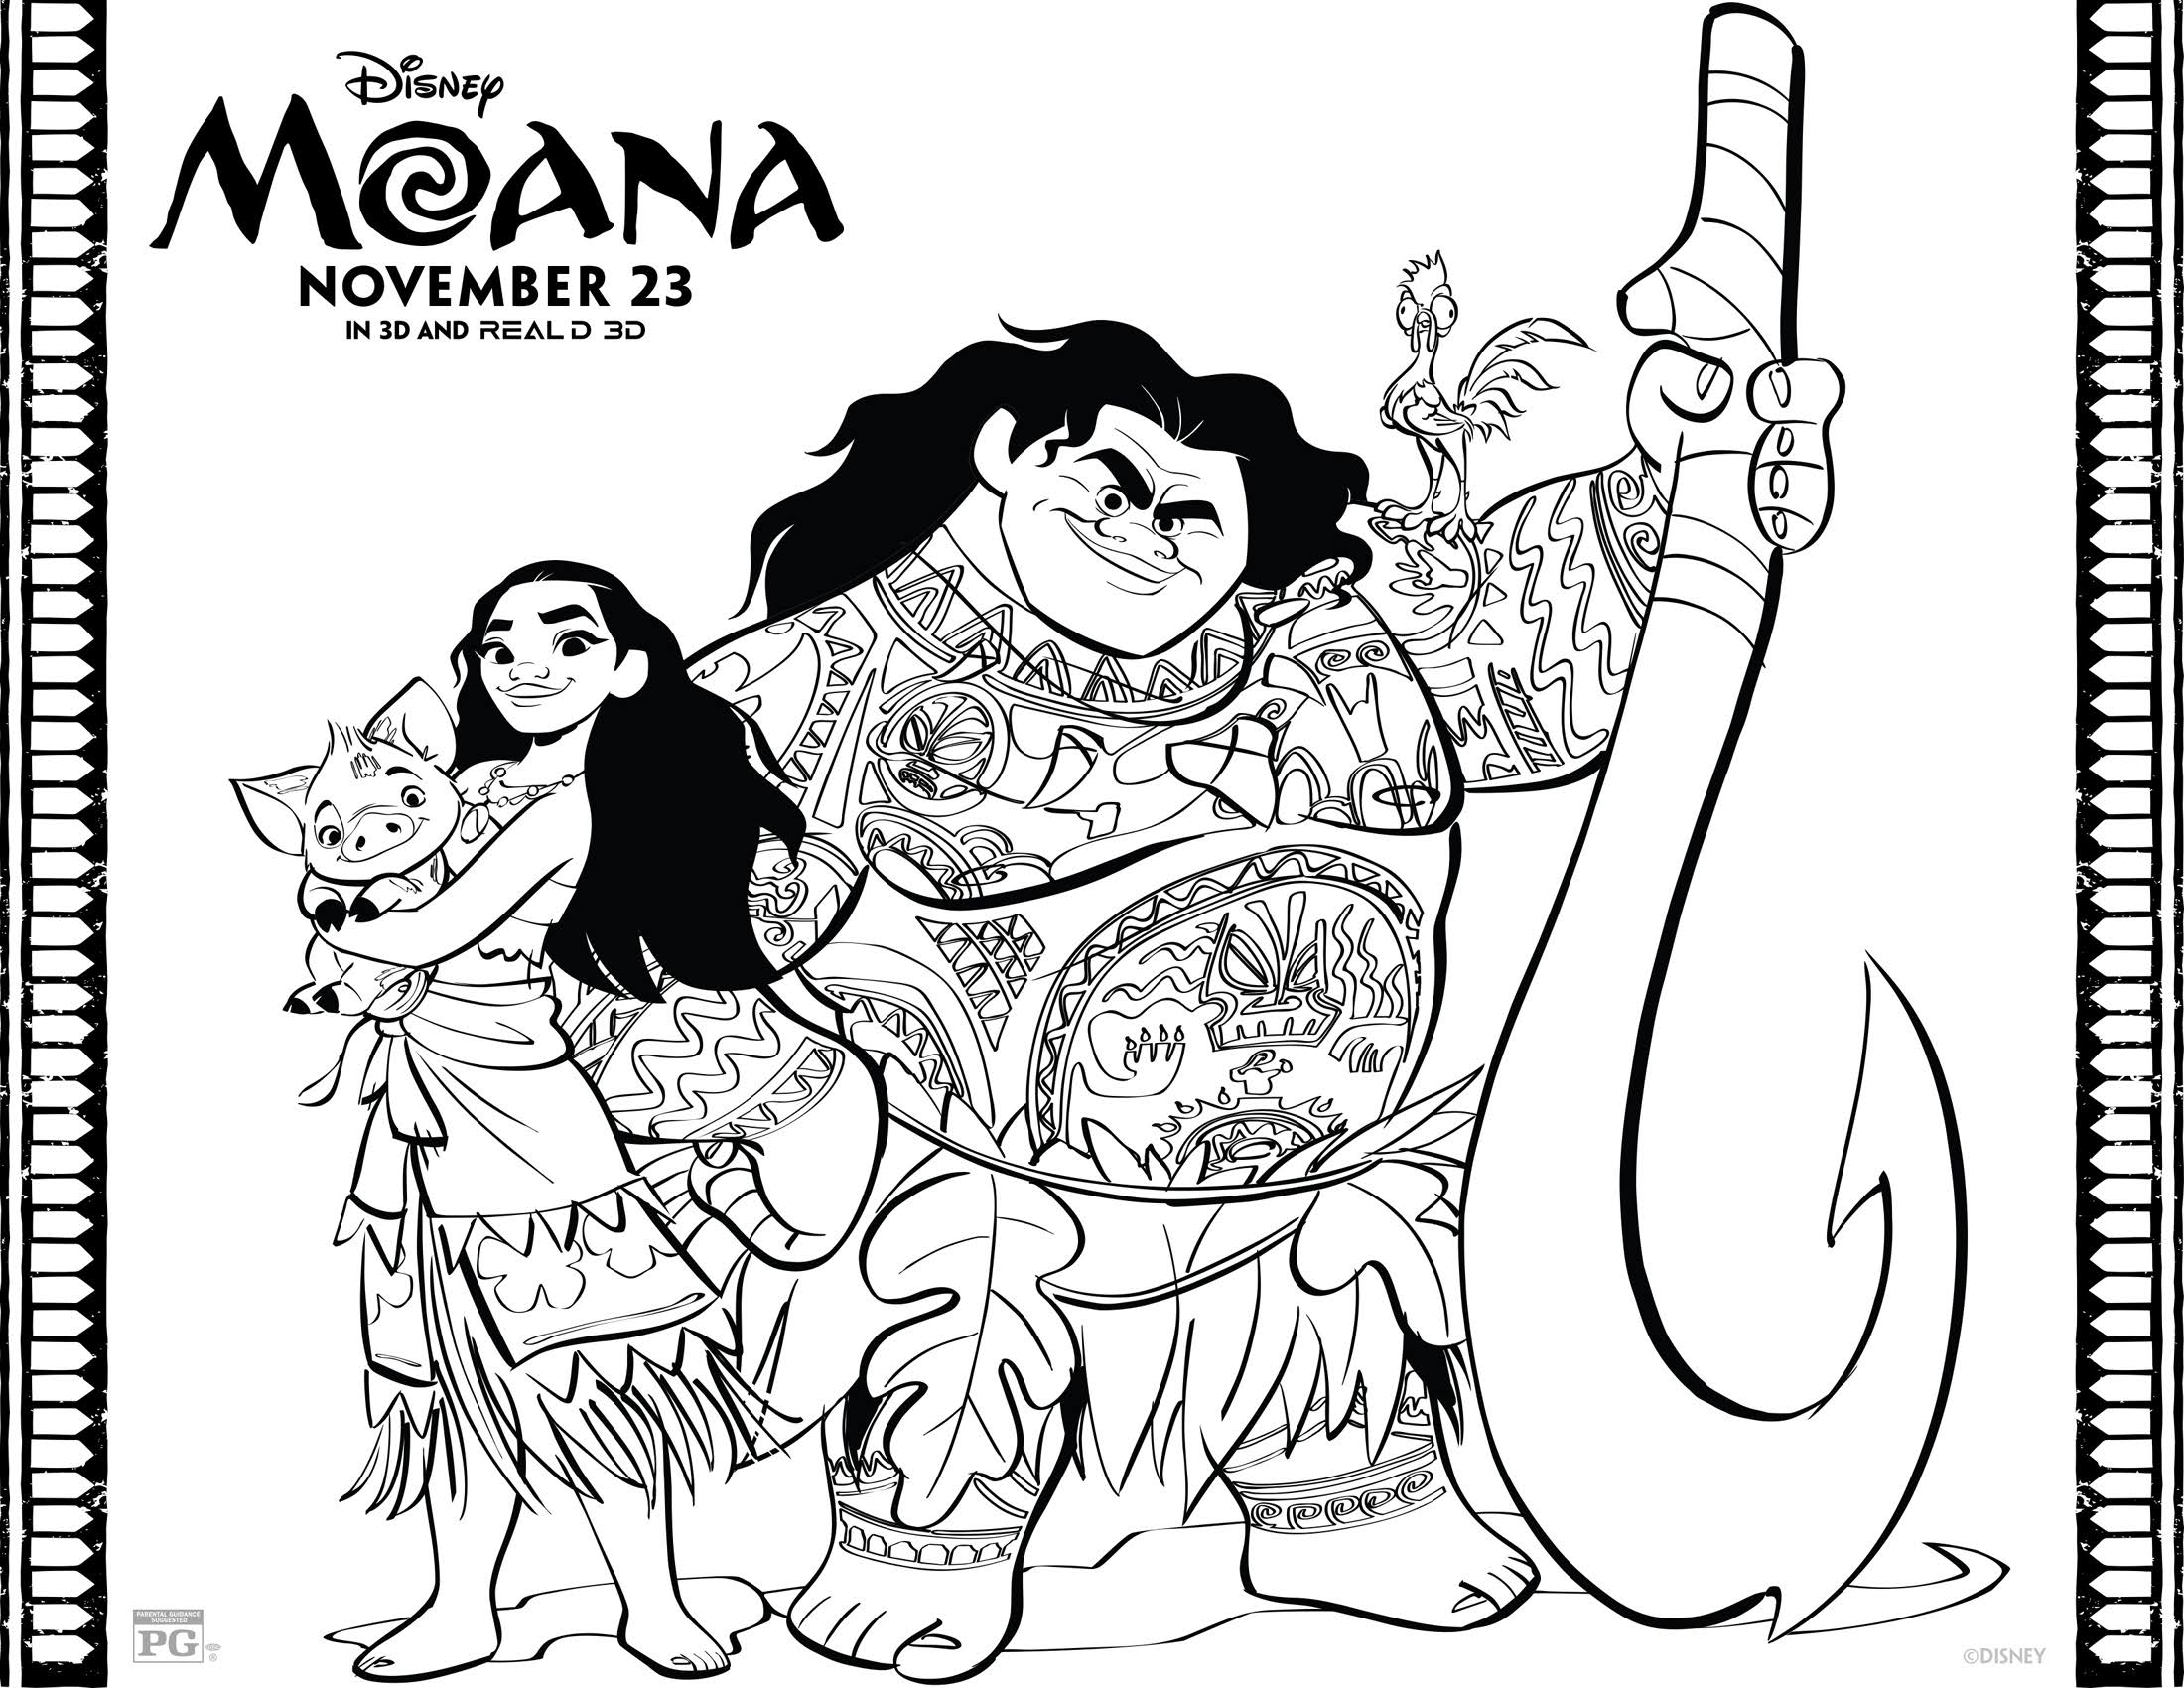 disney moana coloring pages disney39s moana coloring pages and activity sheets printables moana disney coloring pages